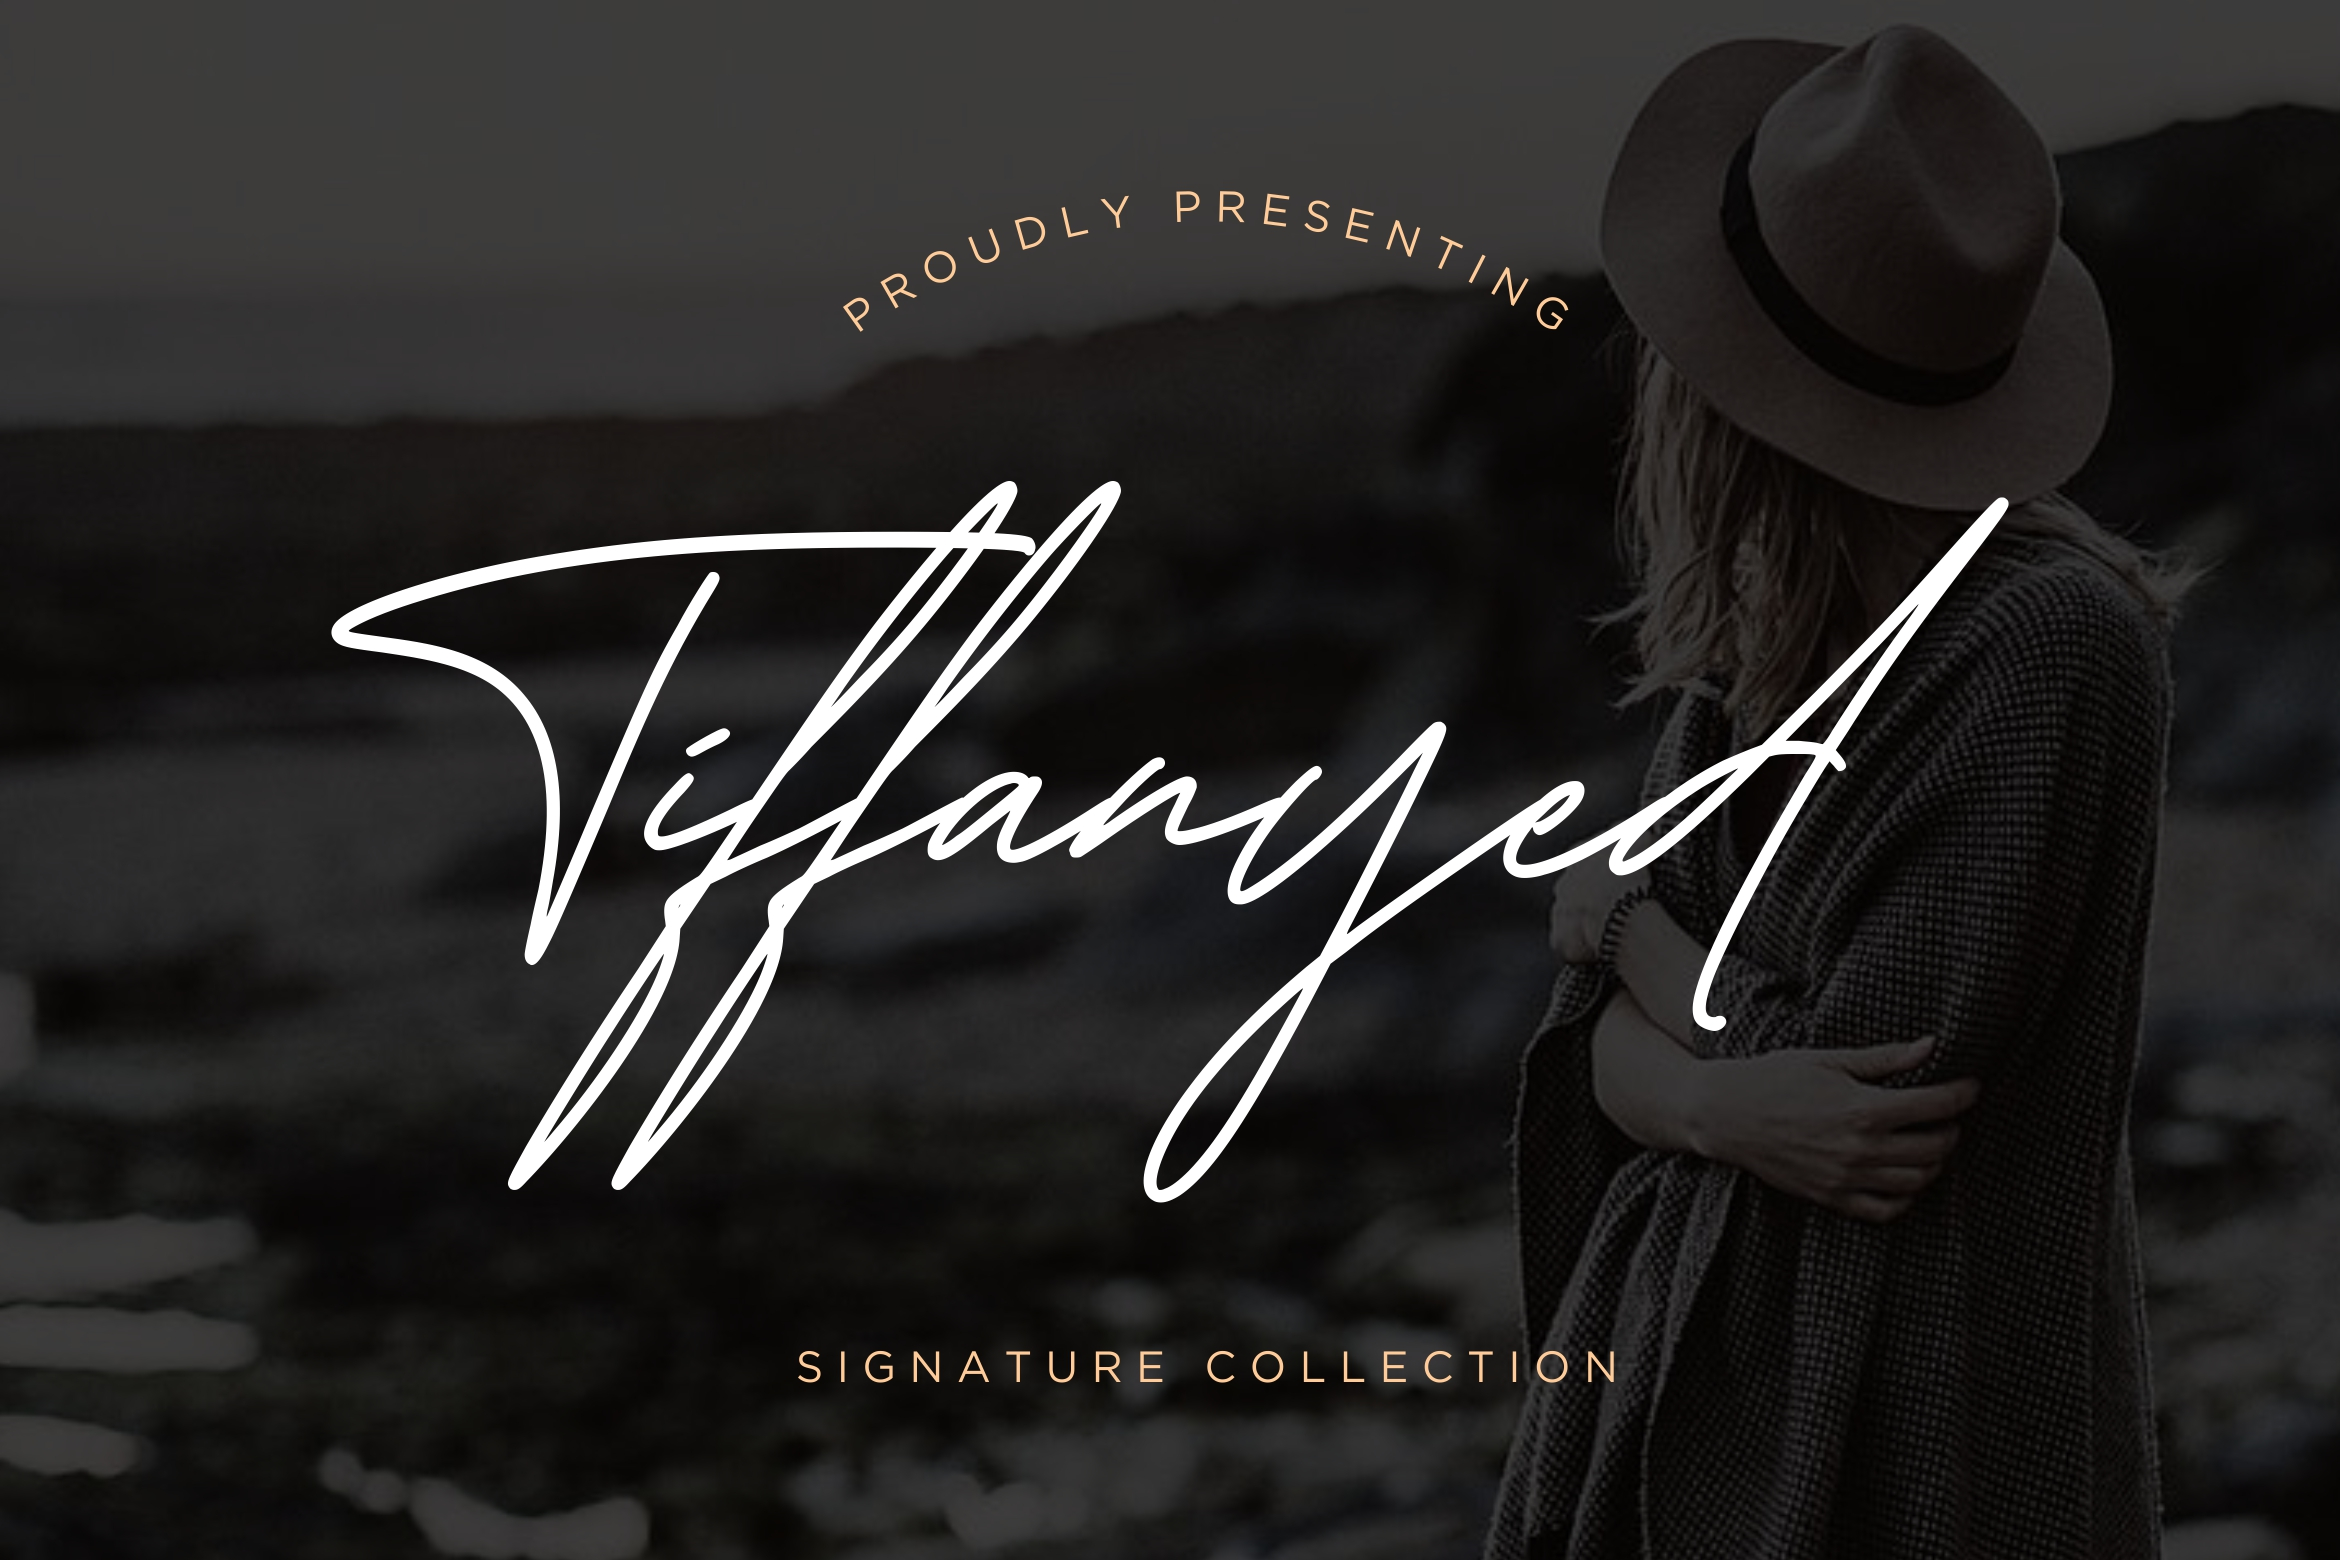 Tiffanyed Signature Collection example image 1